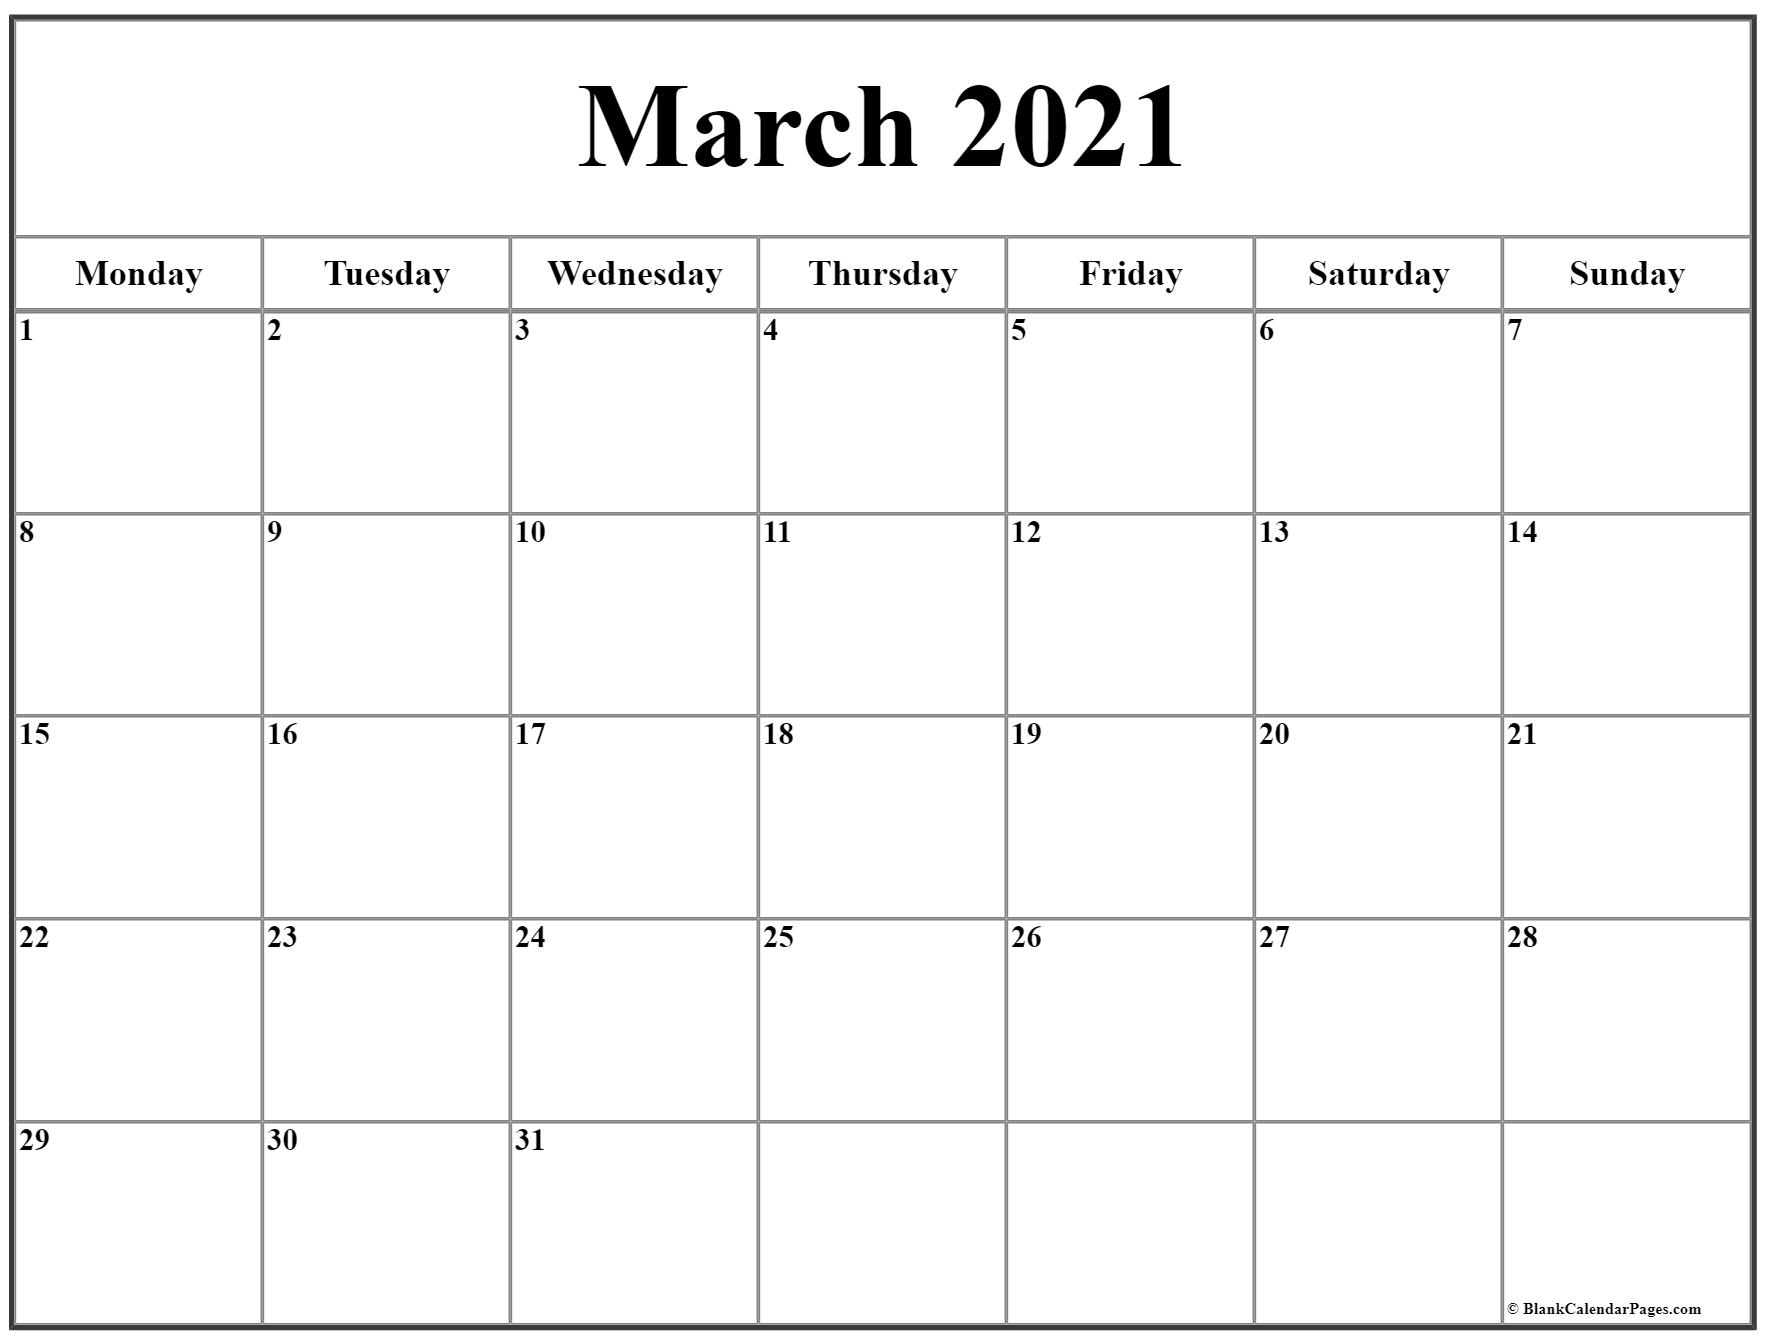 March 2021 Monday Calendar | Monday To Sunday within Saturday Calendar 2021